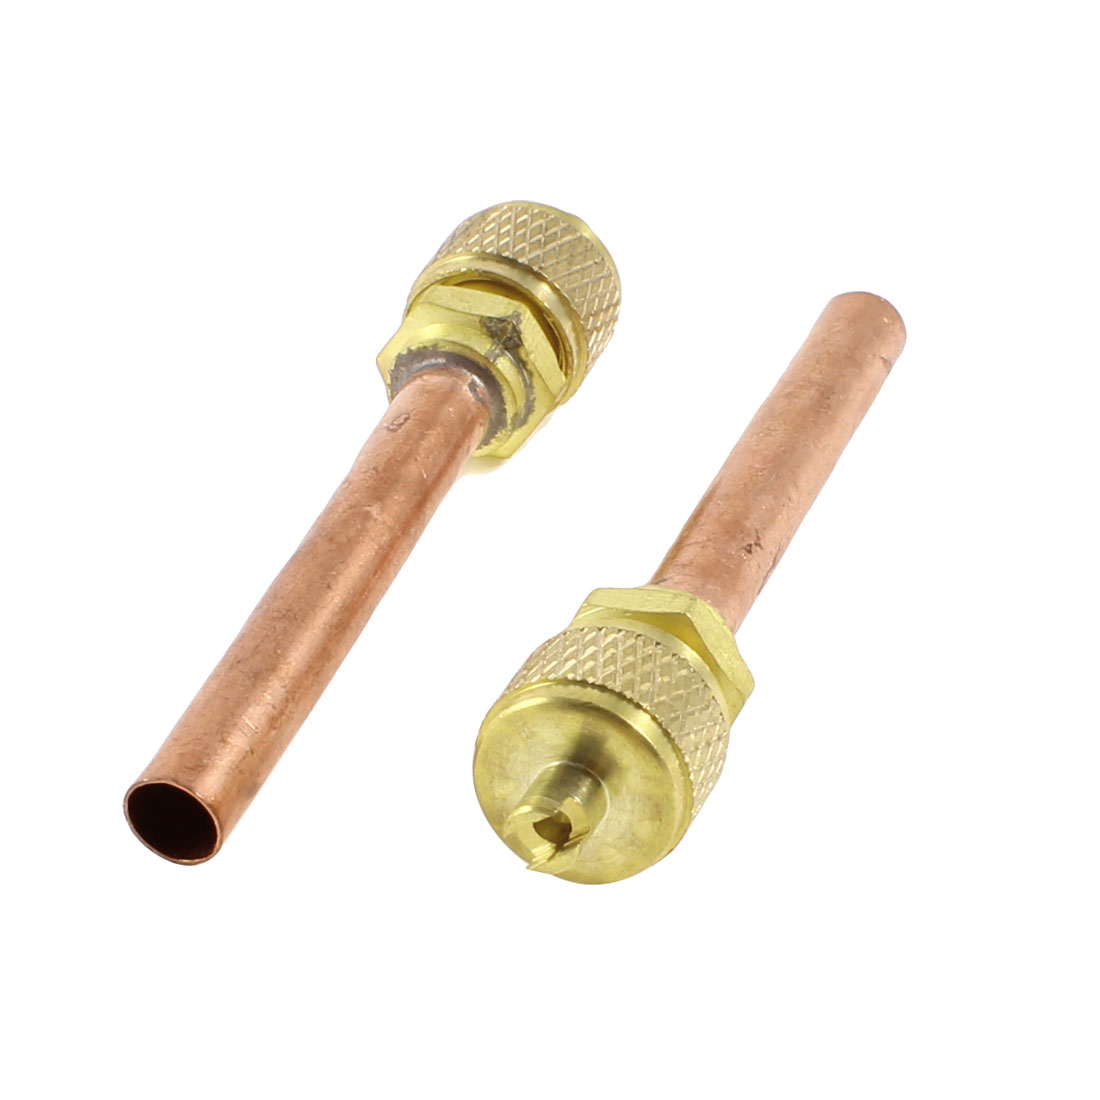 "2 Pcs 0.24"" Dia Copper Tube Air Conditioner Refrigeration Access Valve"